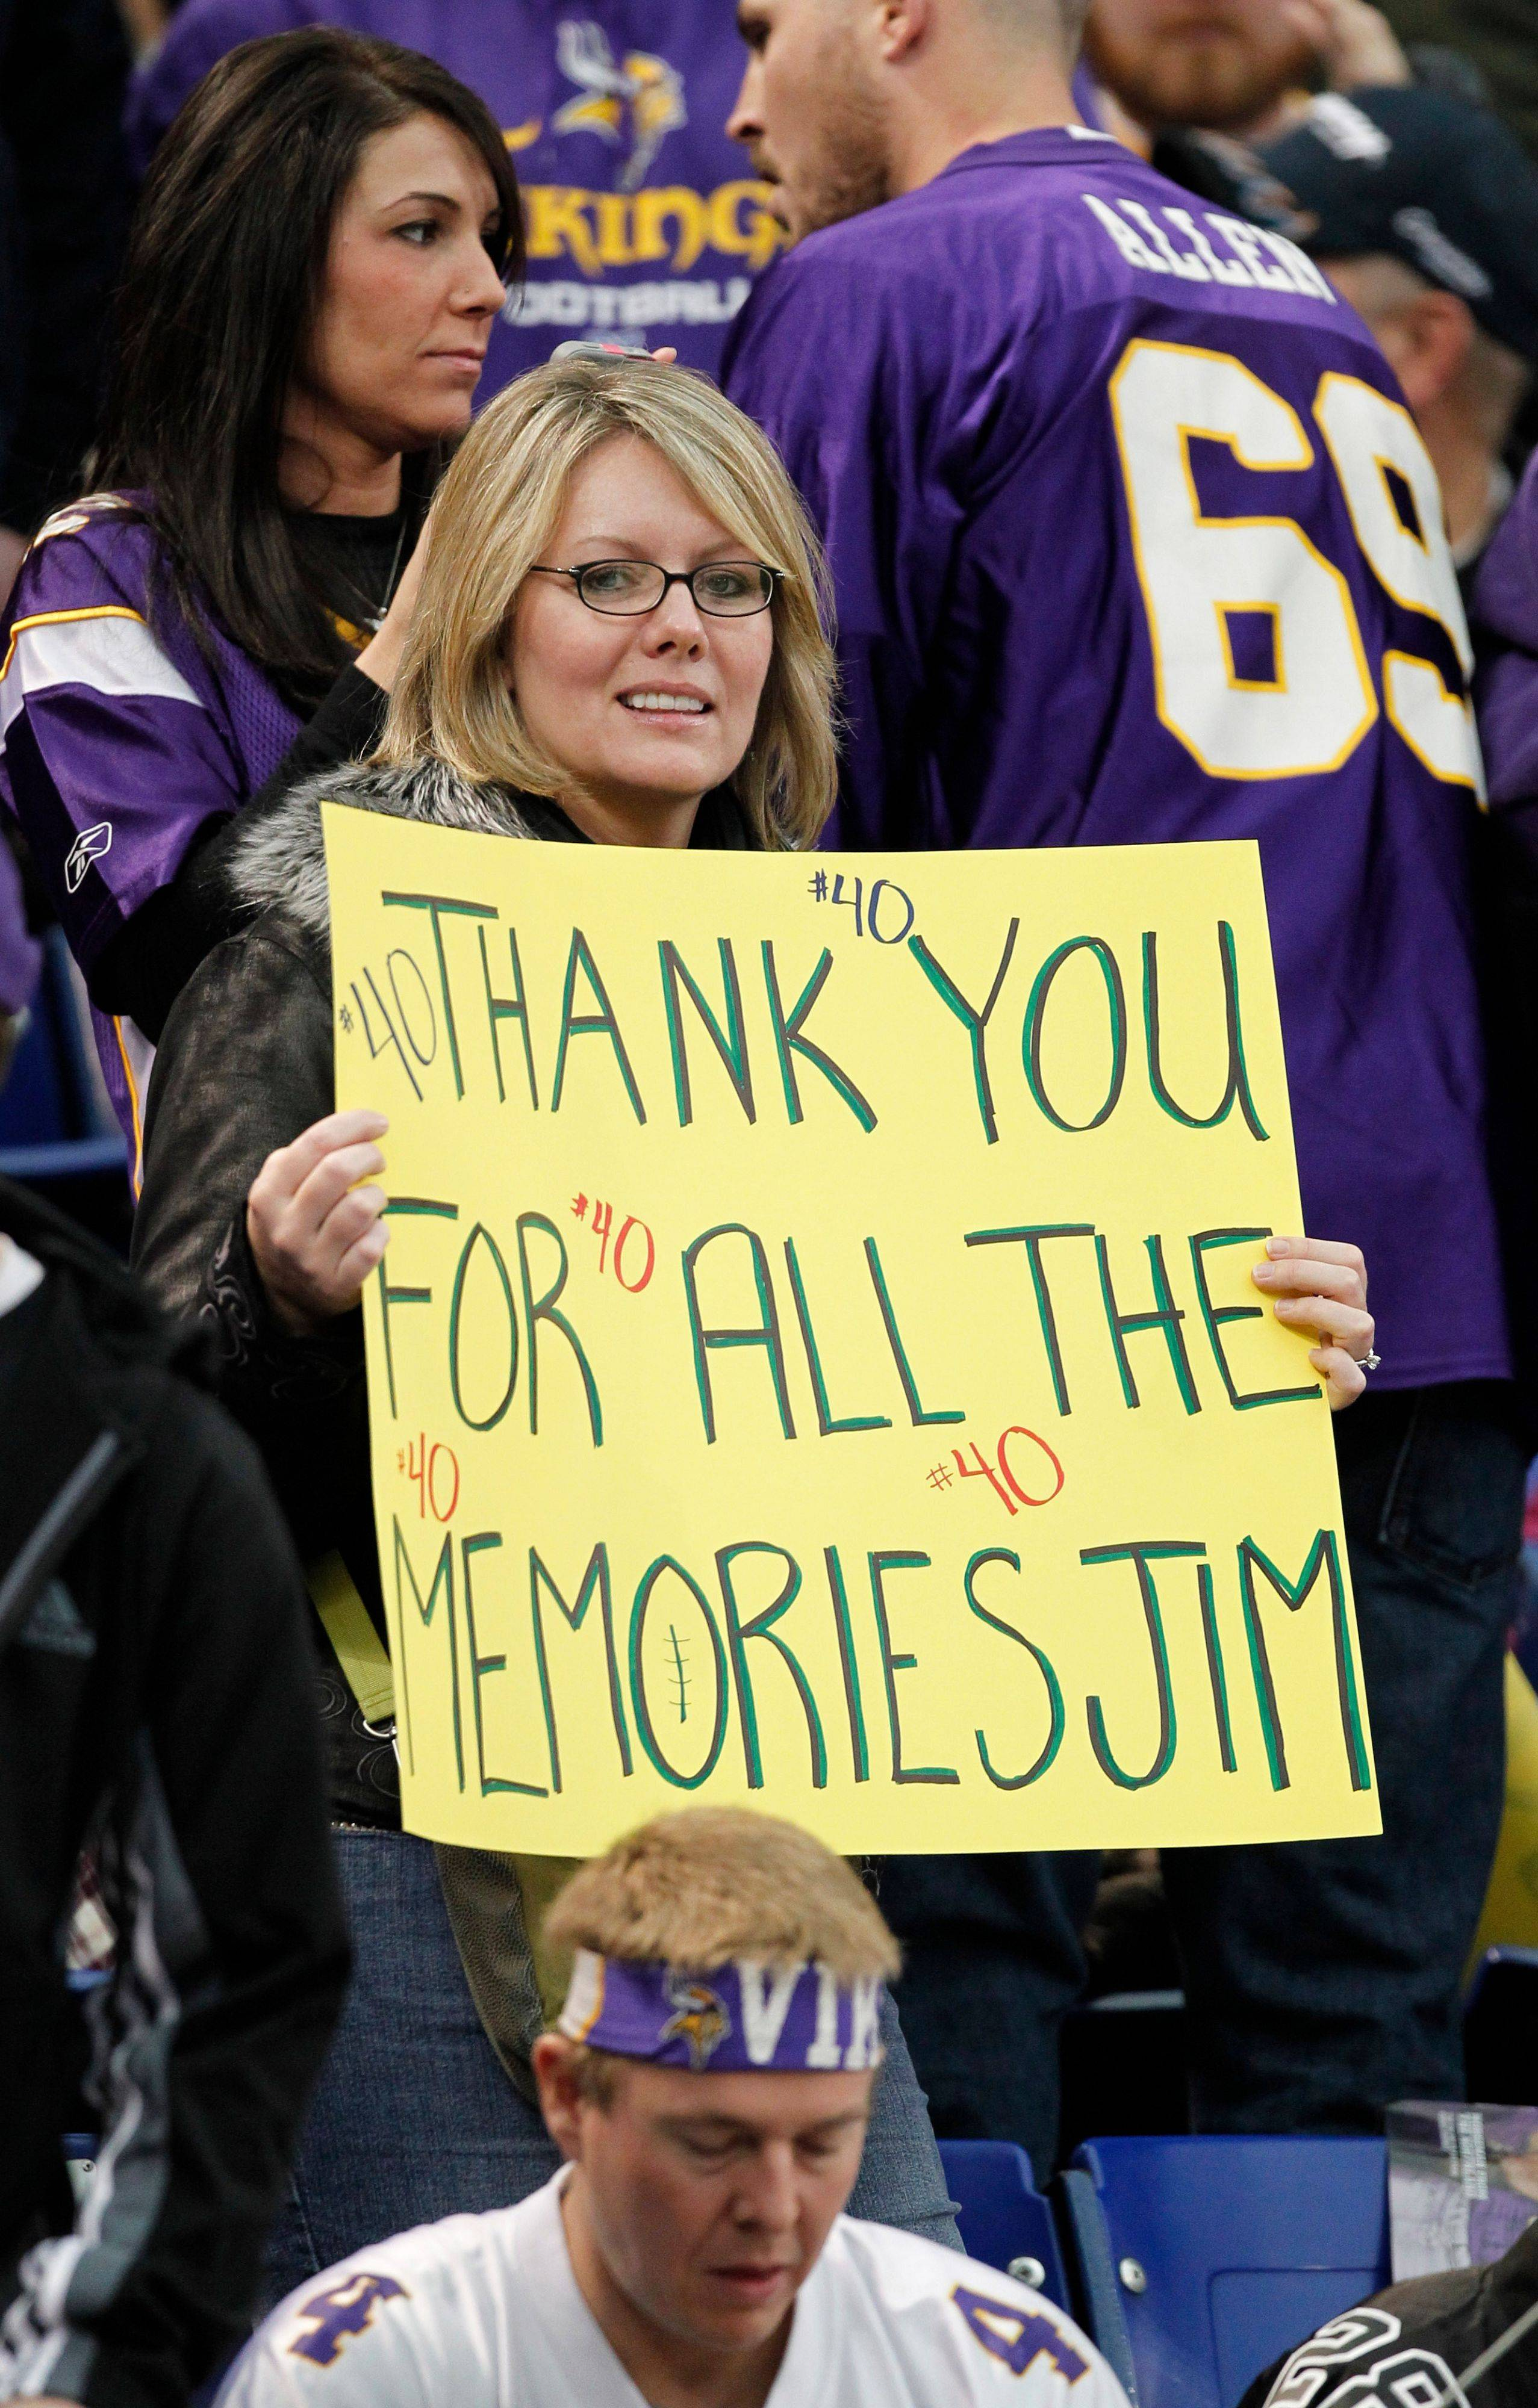 A Minnesota Vikings fan holds up a sign before an NFL football game against the Chicago Bears.